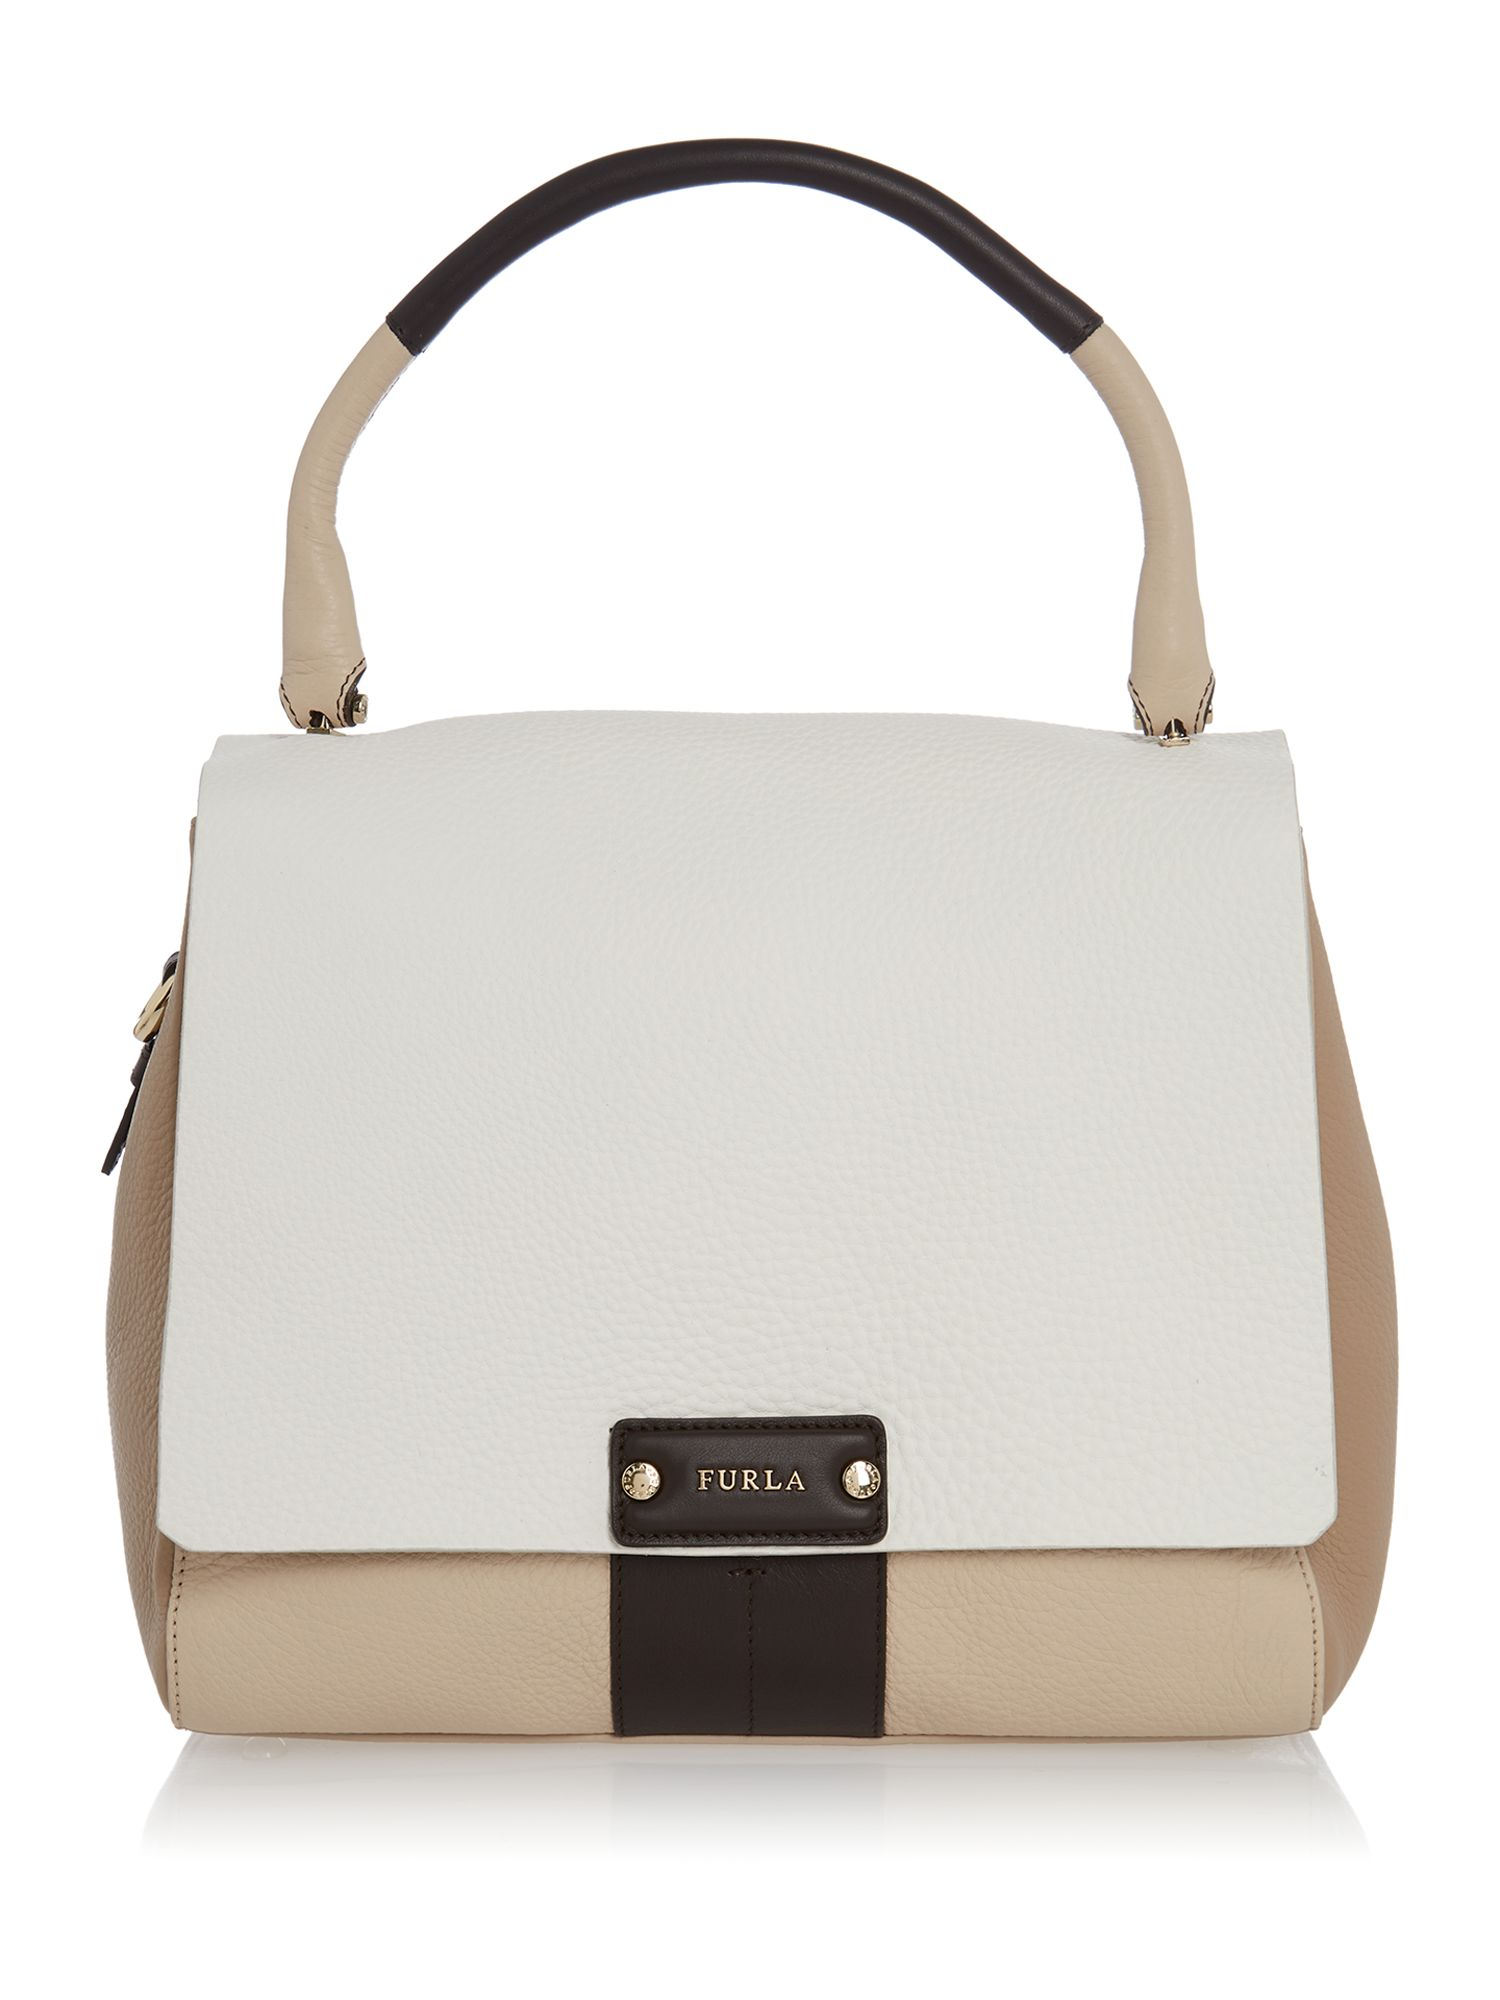 Penelope neutral tote bag